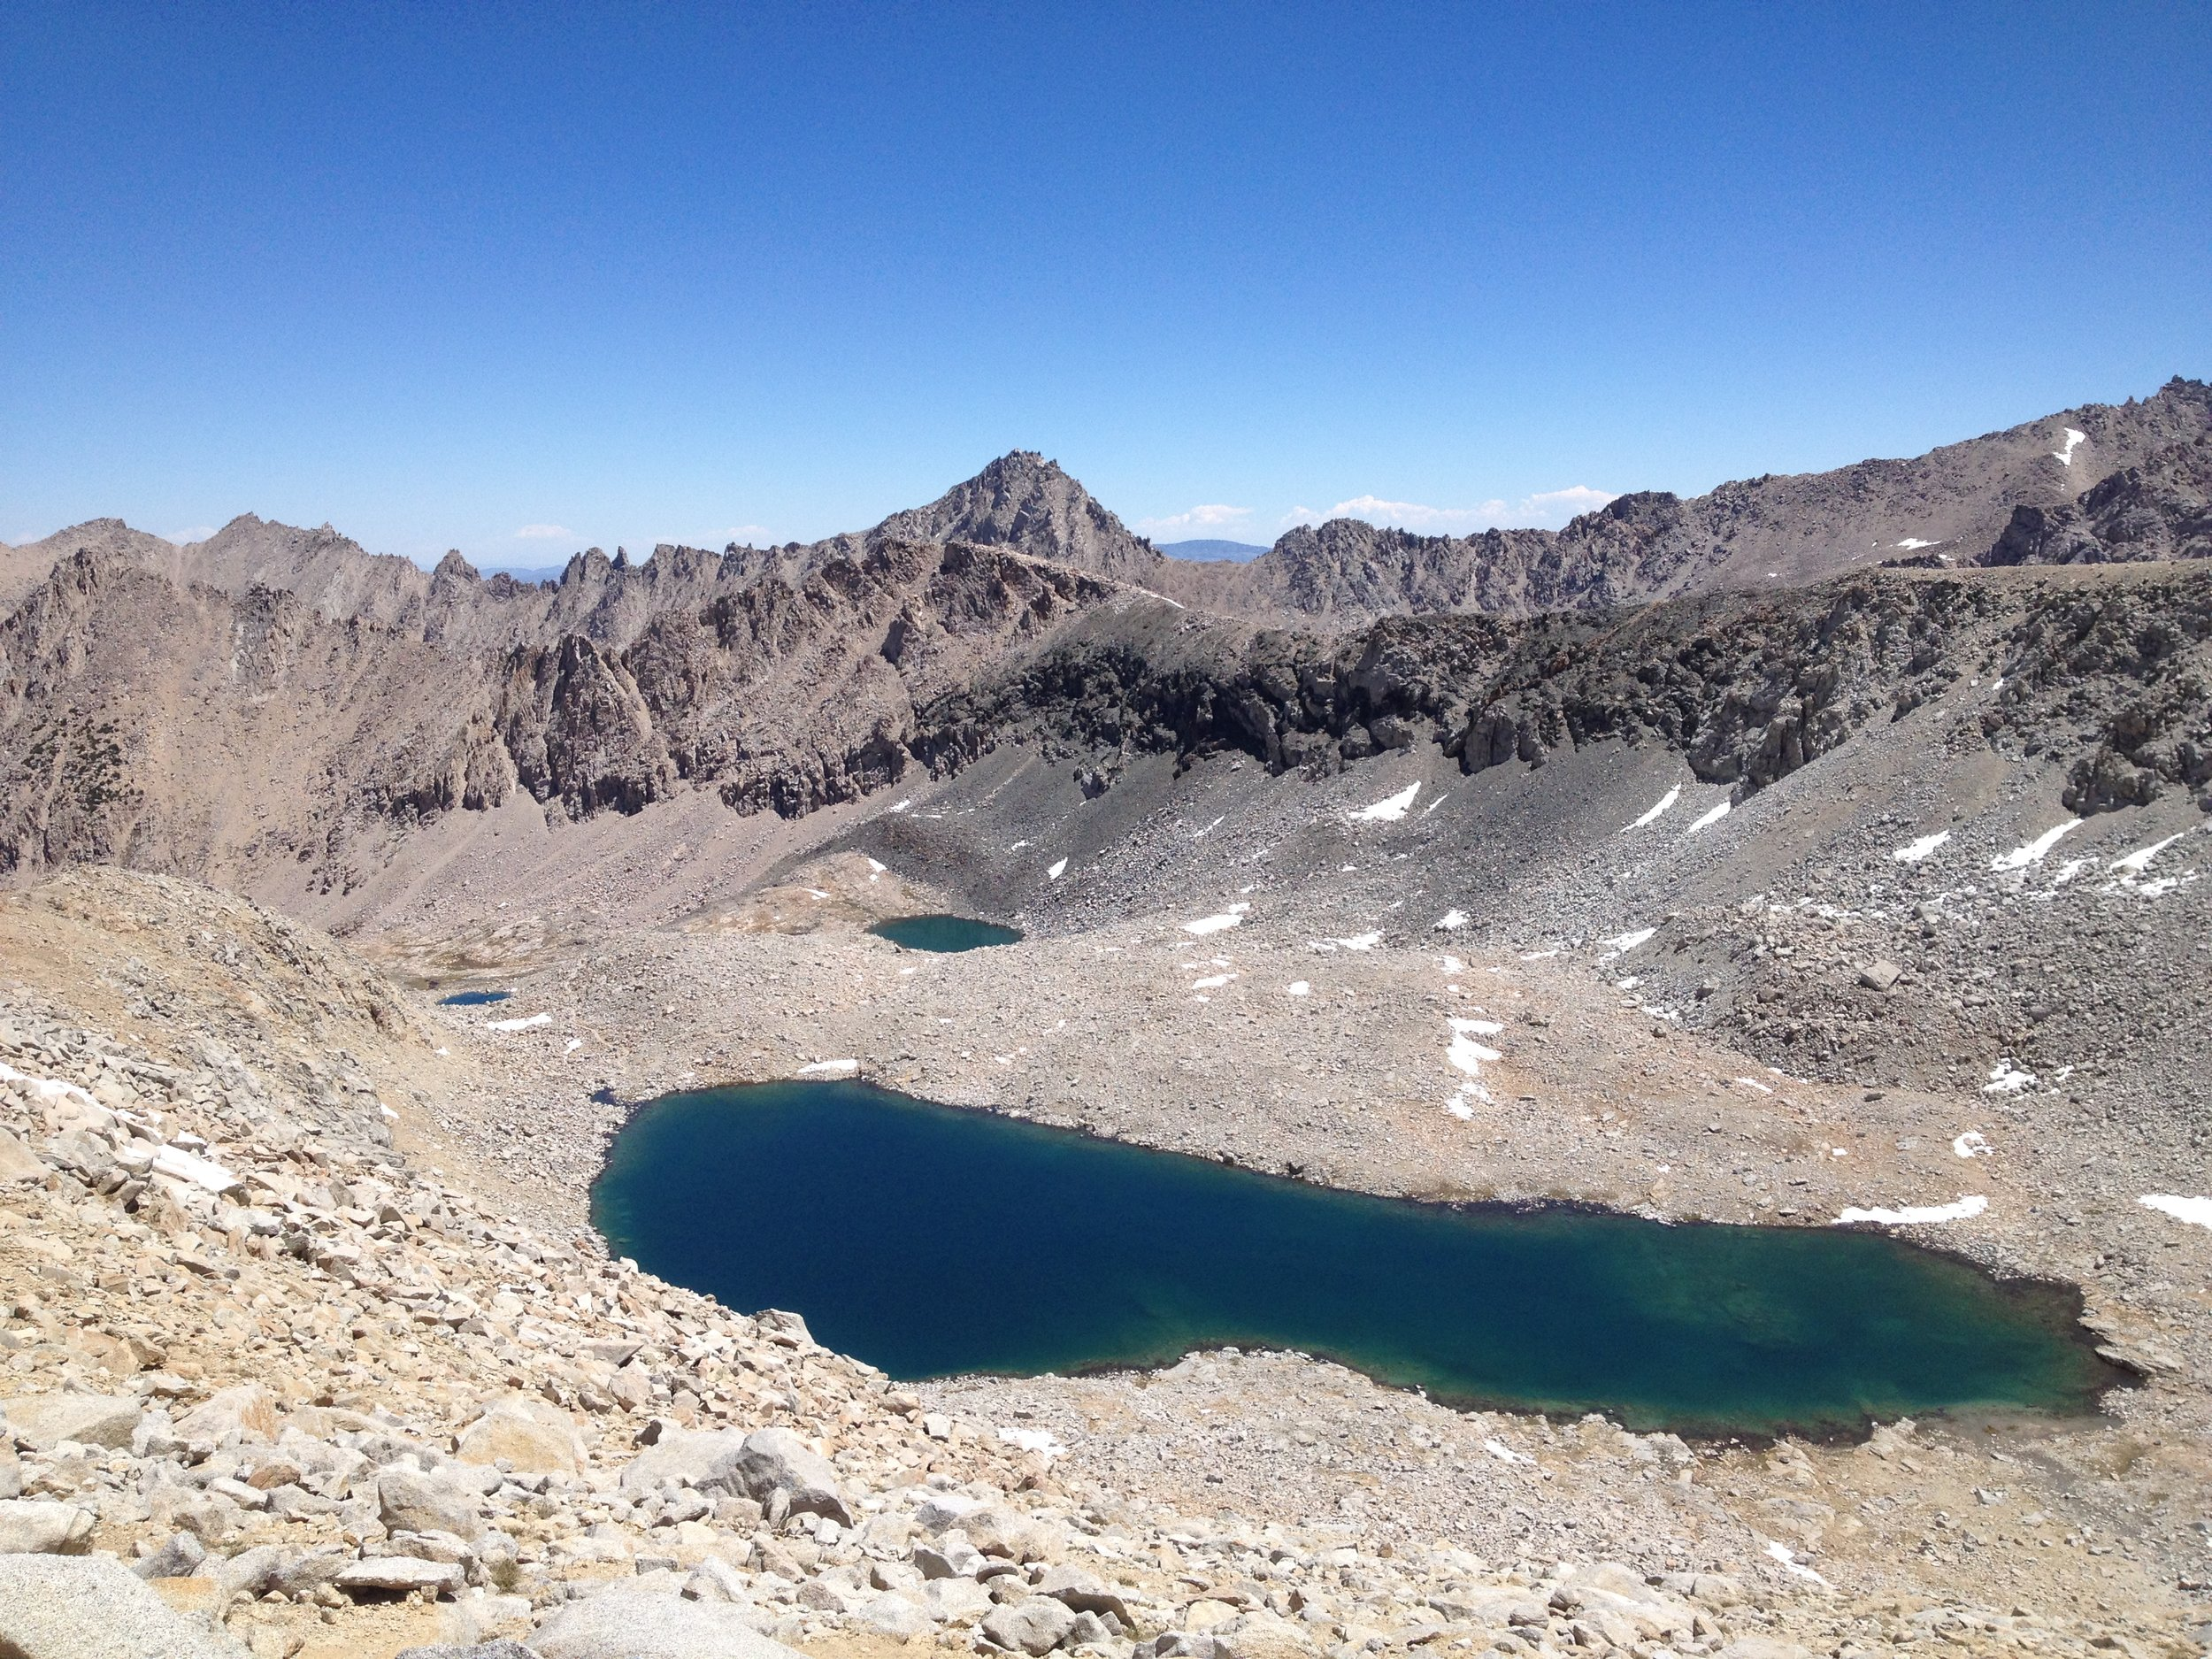 June 2014 - Looking north from Forester Pass on Lake 12,250'.